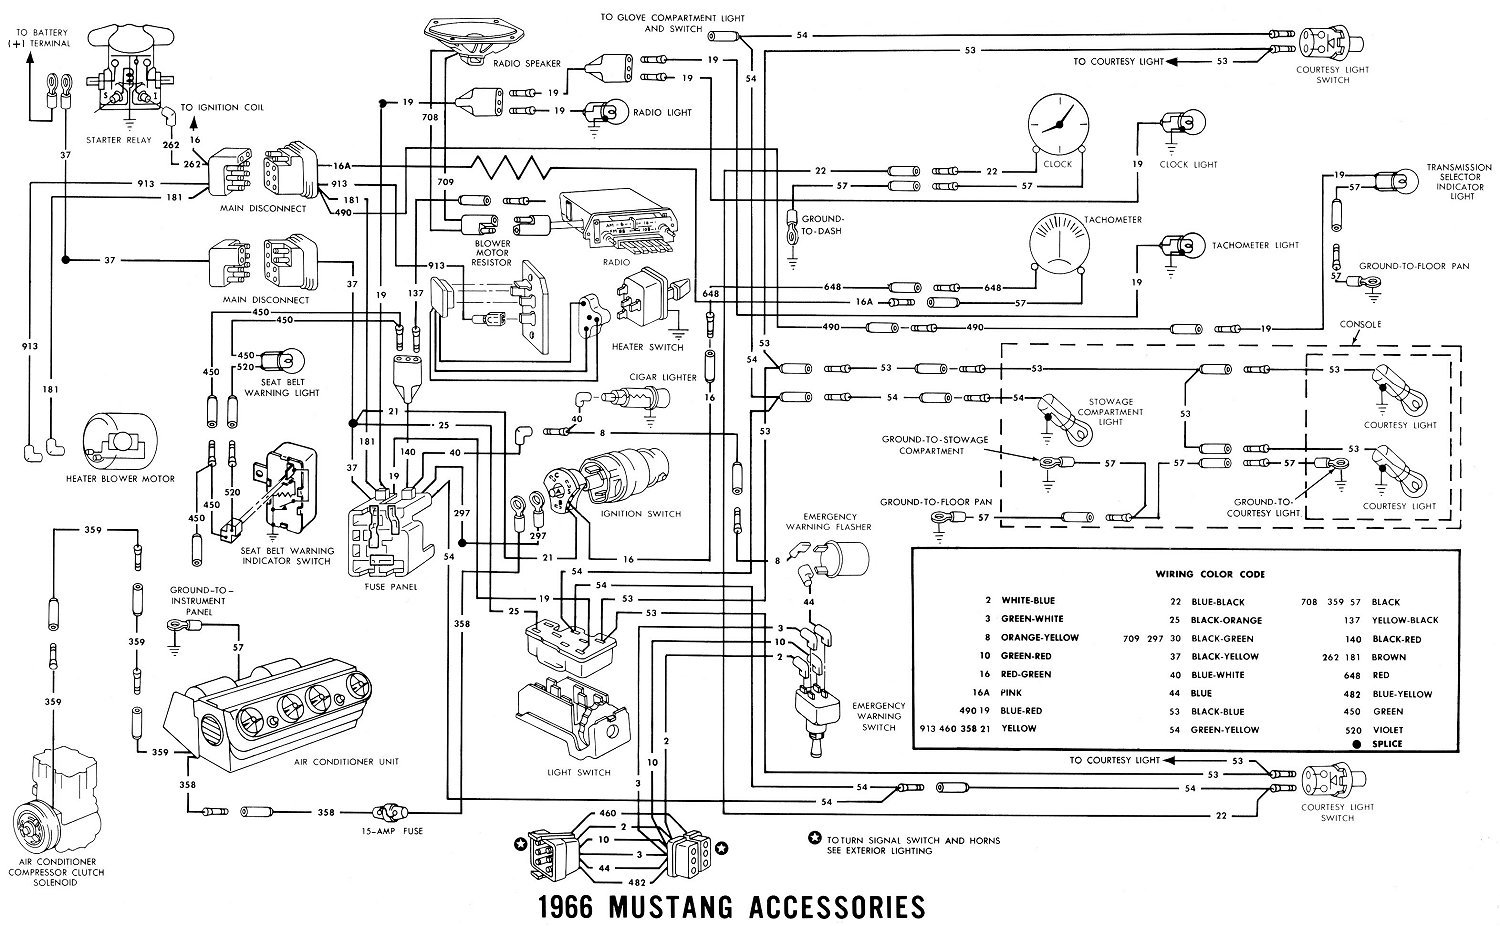 1965 Ford Mustang Wiring Diagram. Ford. Wiring Diagram Images